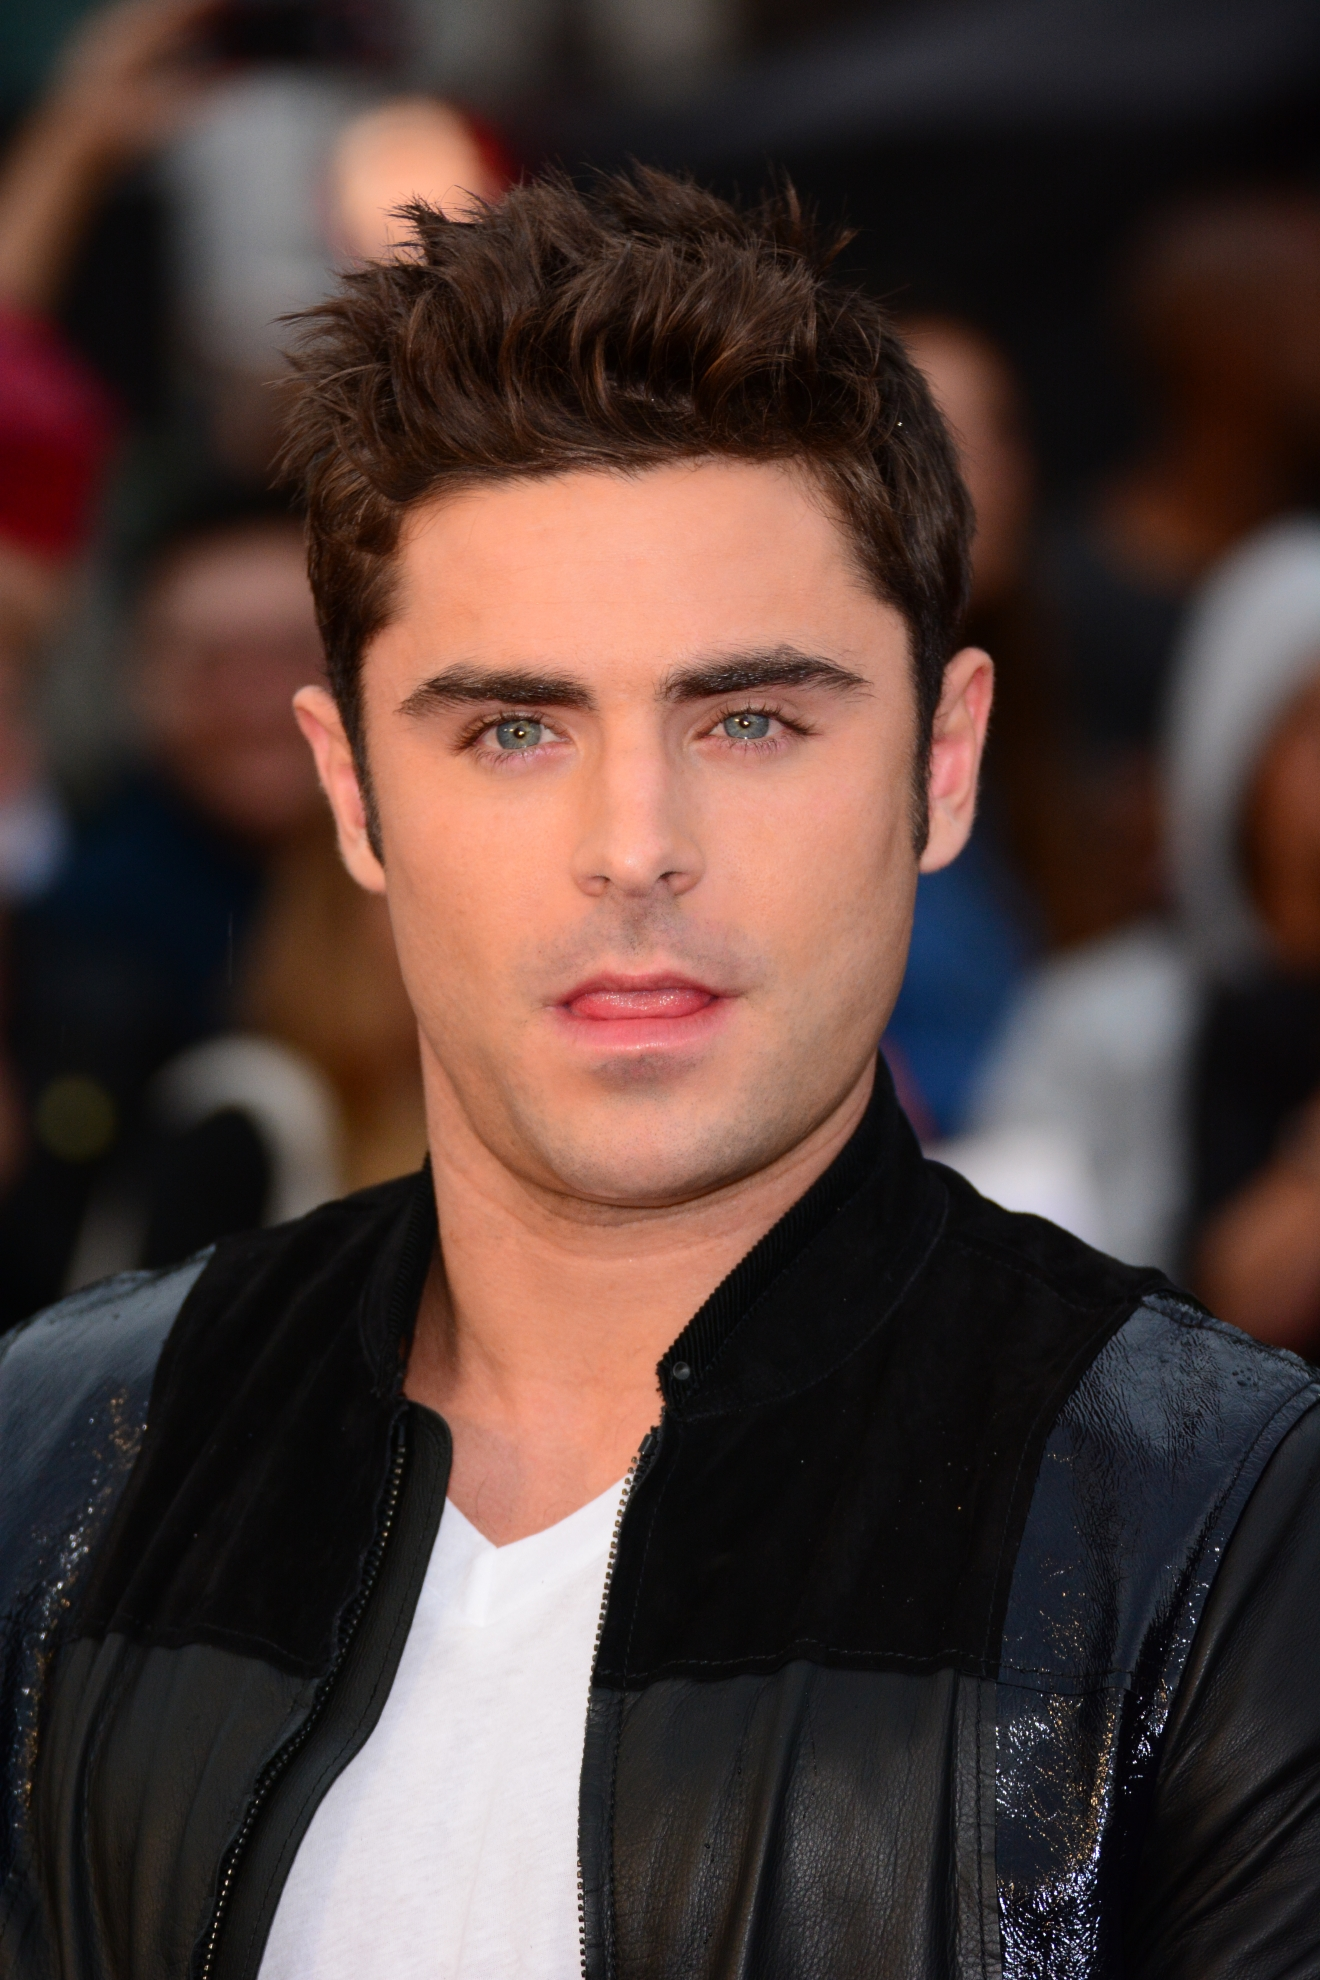 PHOTOS: Zac Efron is s...